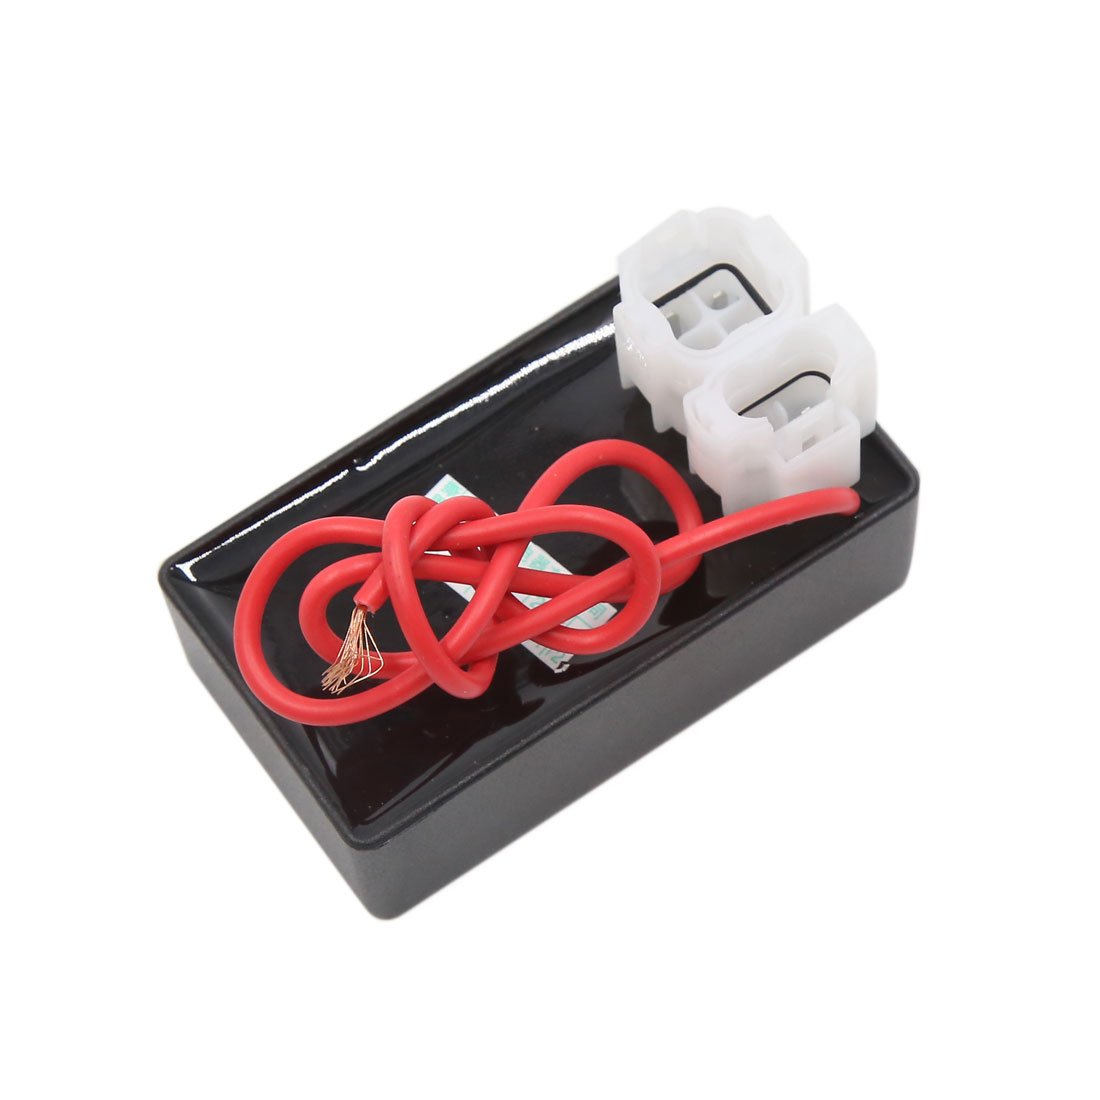 Motorbike Motorcycle Scooter Refires Adjustable DC Electronic Igniter for GY6-125